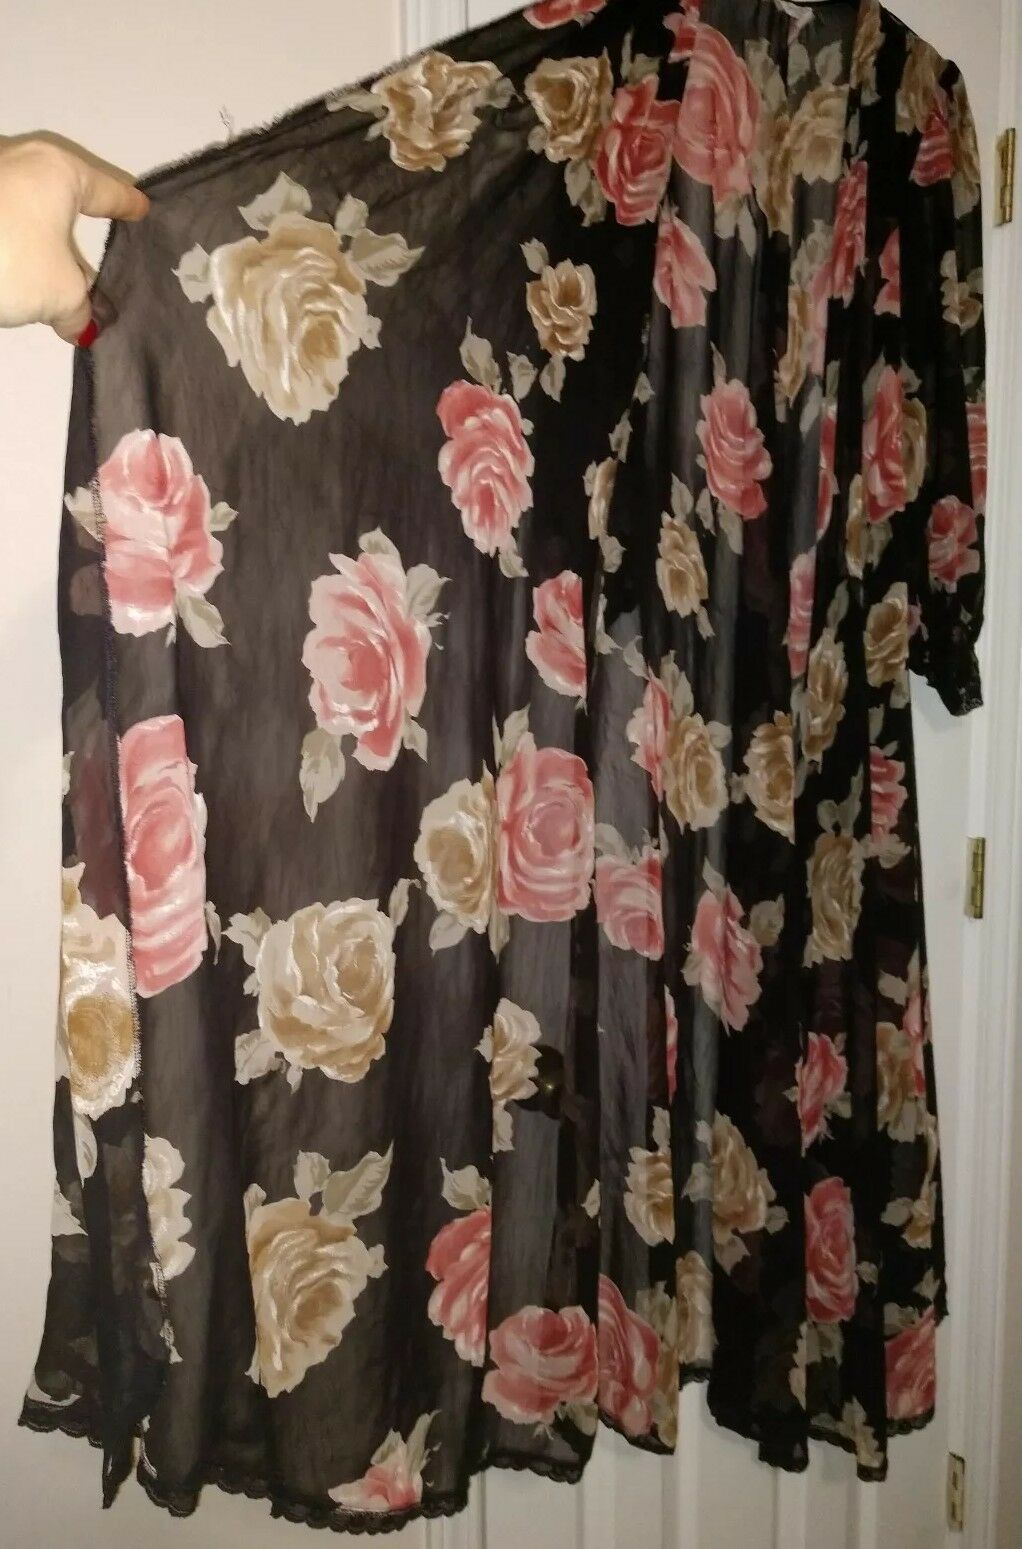 Lucie Ann Vintage Floral Sheer Size Small  - image 4